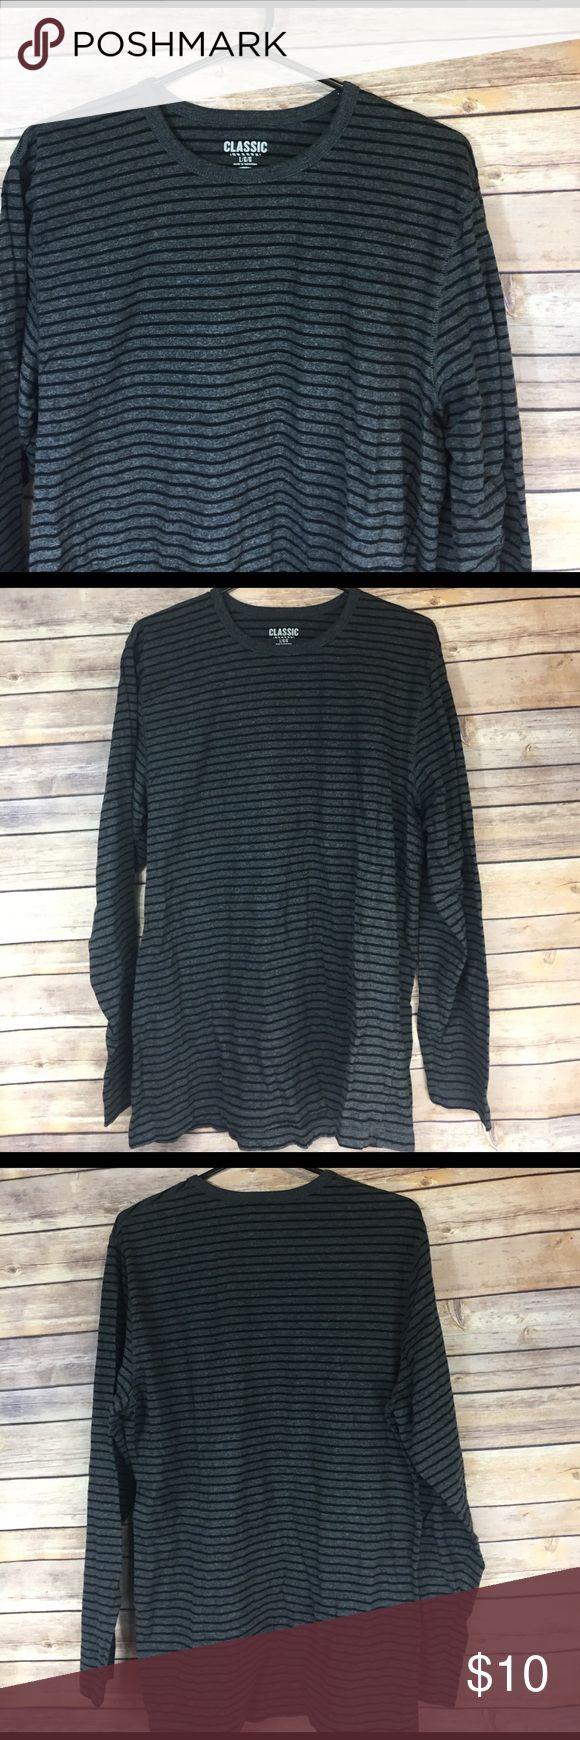 🚹large old navy classic long sleeve tee Like new.  🛍 buy 2+ items and get 25% off your purchase automatically!! 🛍 Old Navy Shirts Tees - Long Sleeve